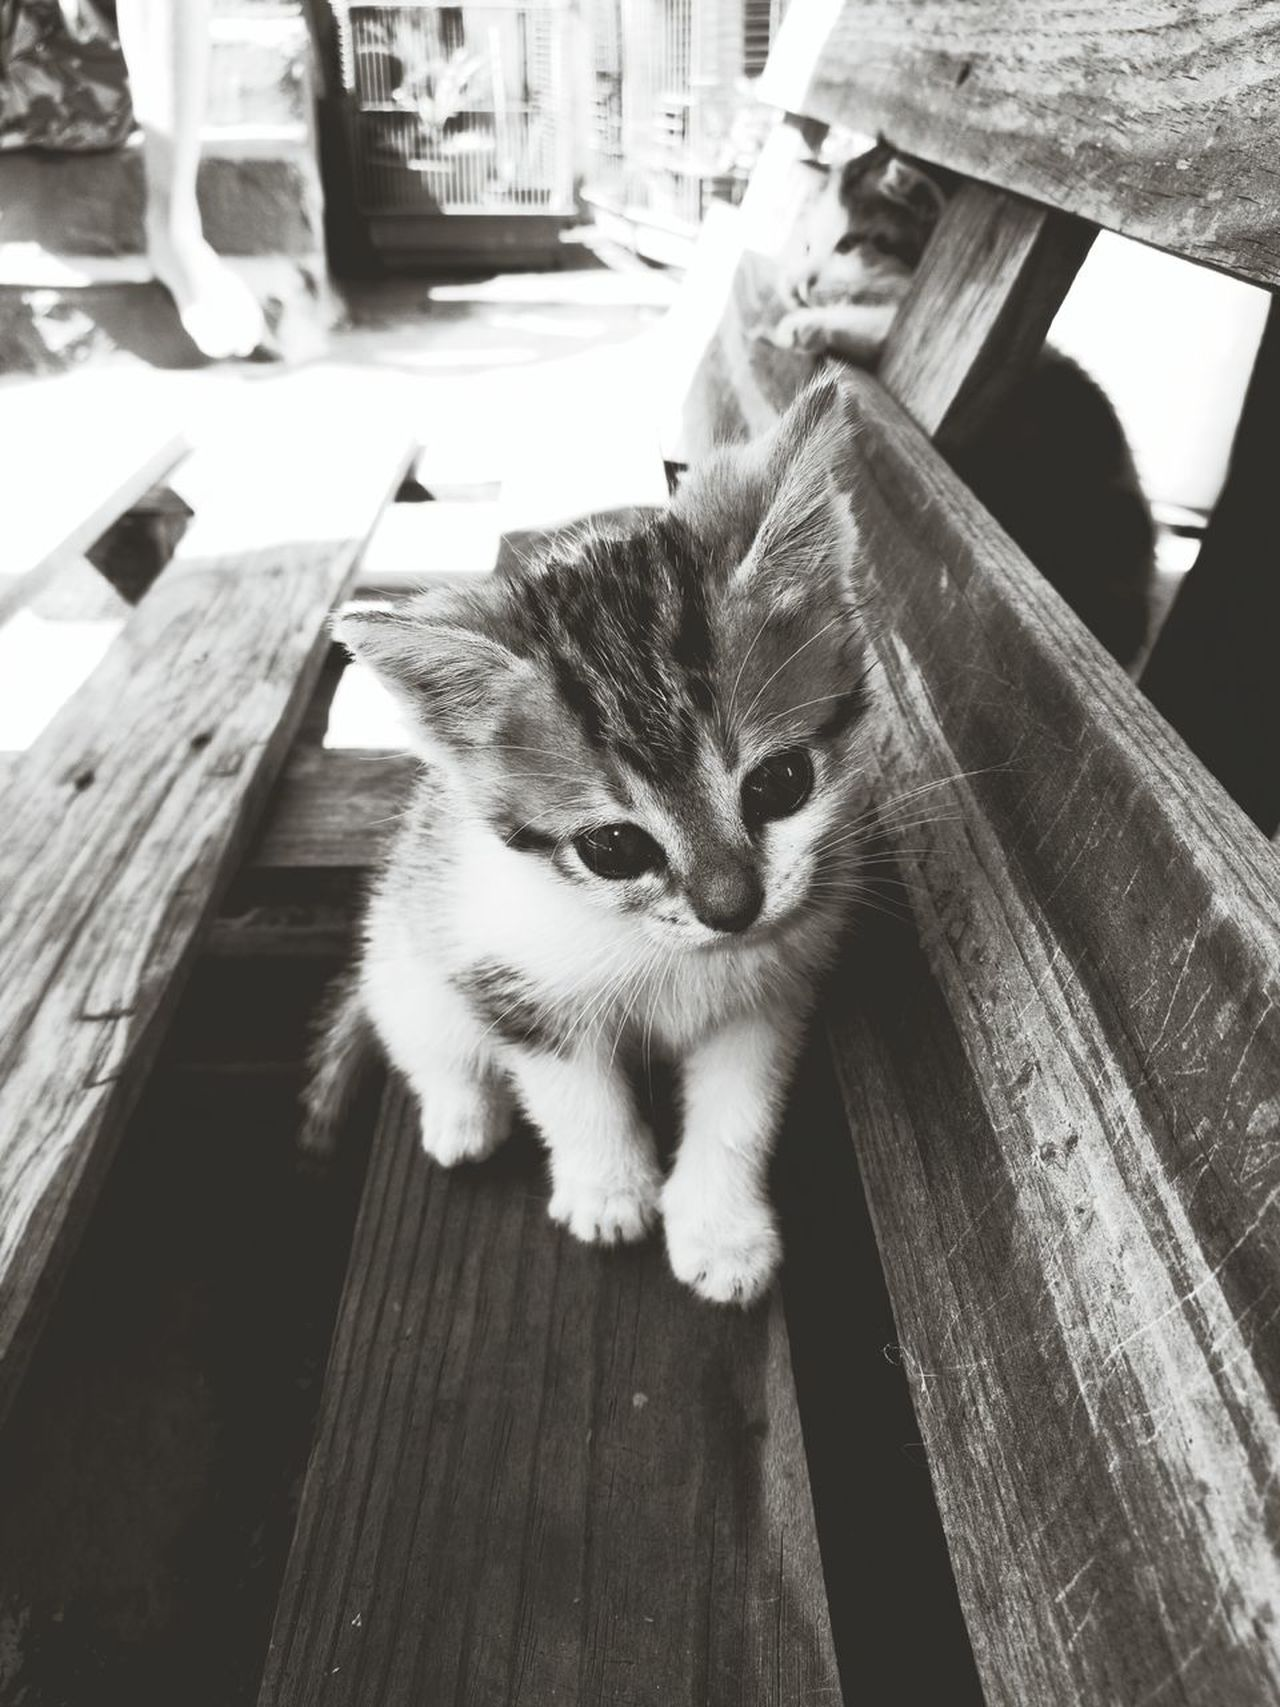 Pets One Animal Domestic Animals Domestic Cat Day No People Indoors  Animal Themes Close-up Cats Of EyeEm Greyscale Playing Discovering Babycat